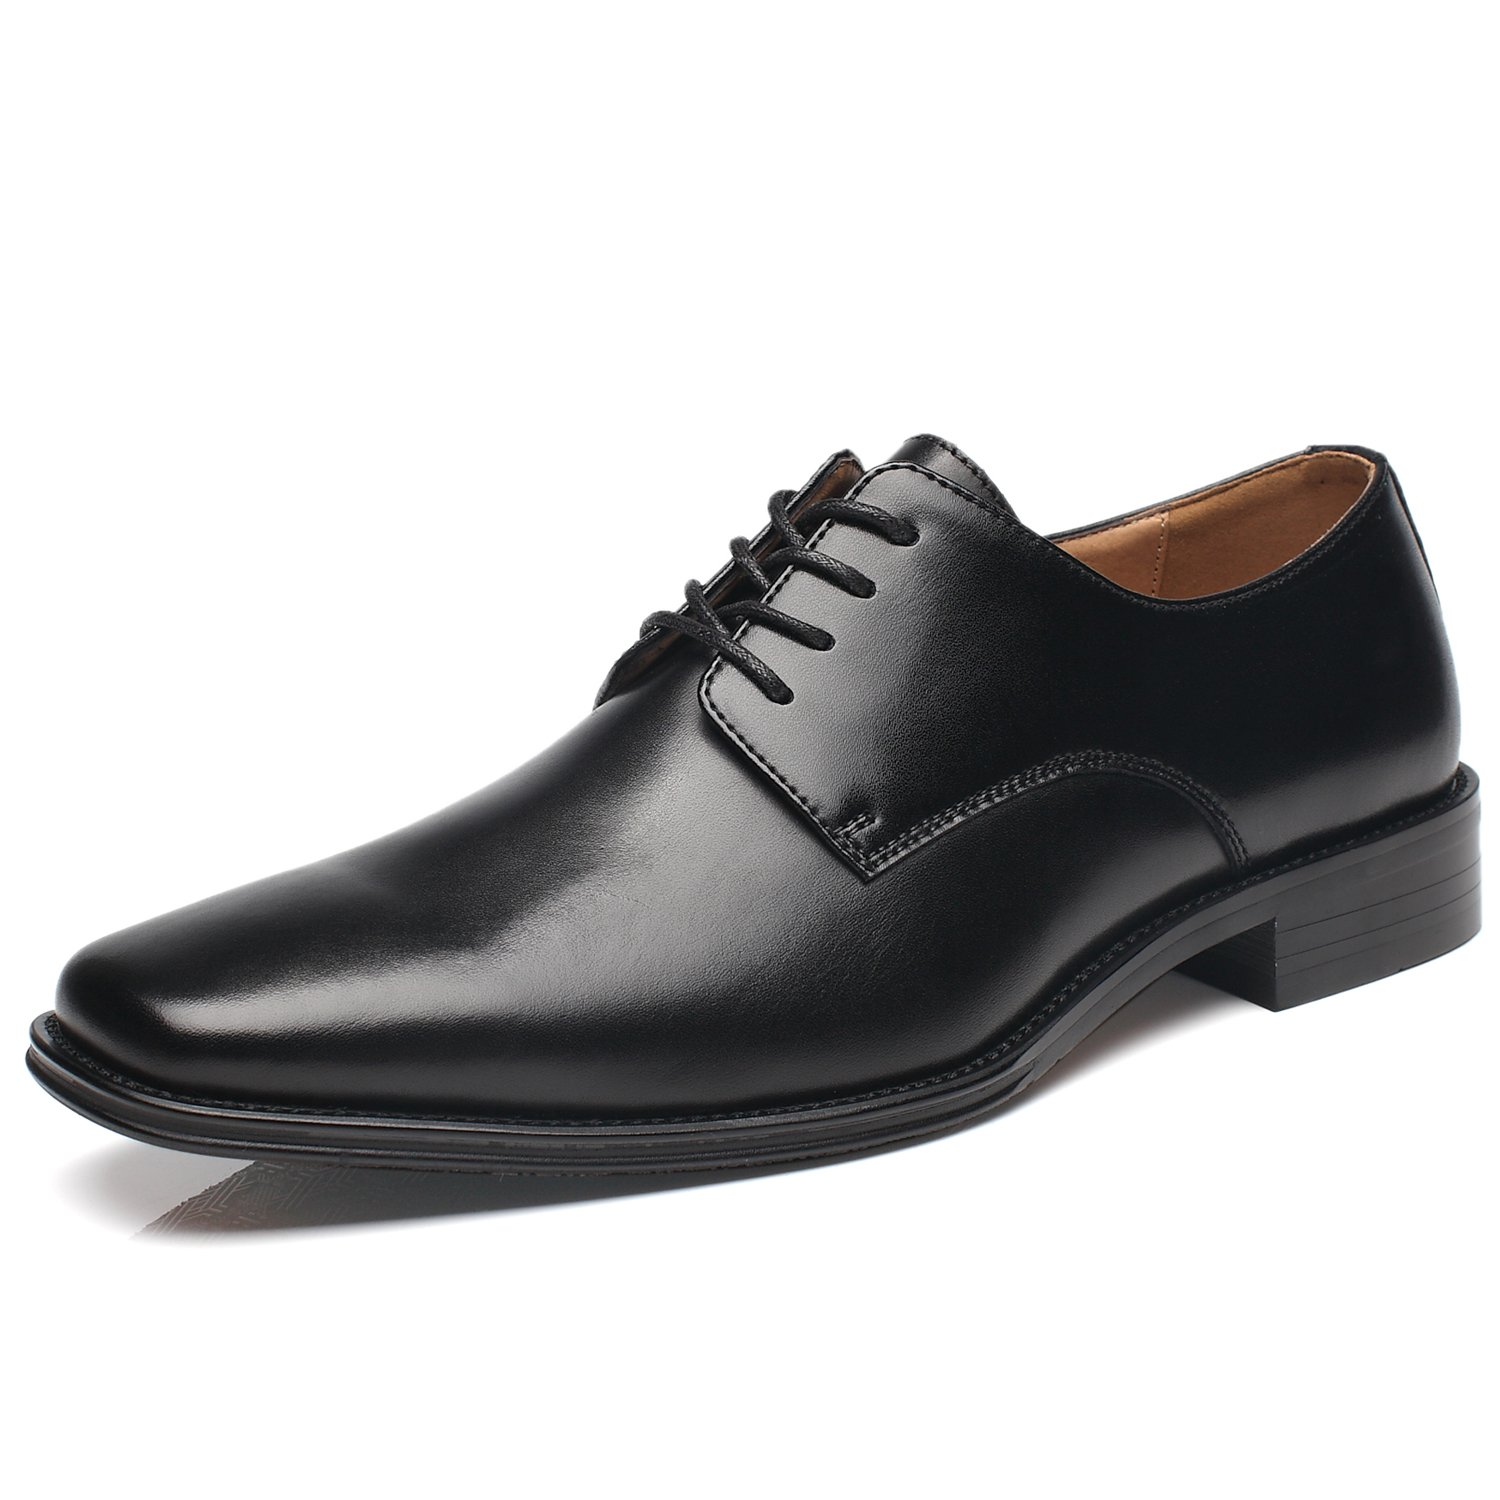 NXT NEW YORK Mens Dress Shoes Geniune Leather Oxford Shoes for Men Zapatos de Hombre Lace up Comfortable Classic Modern Formal Business Shoes